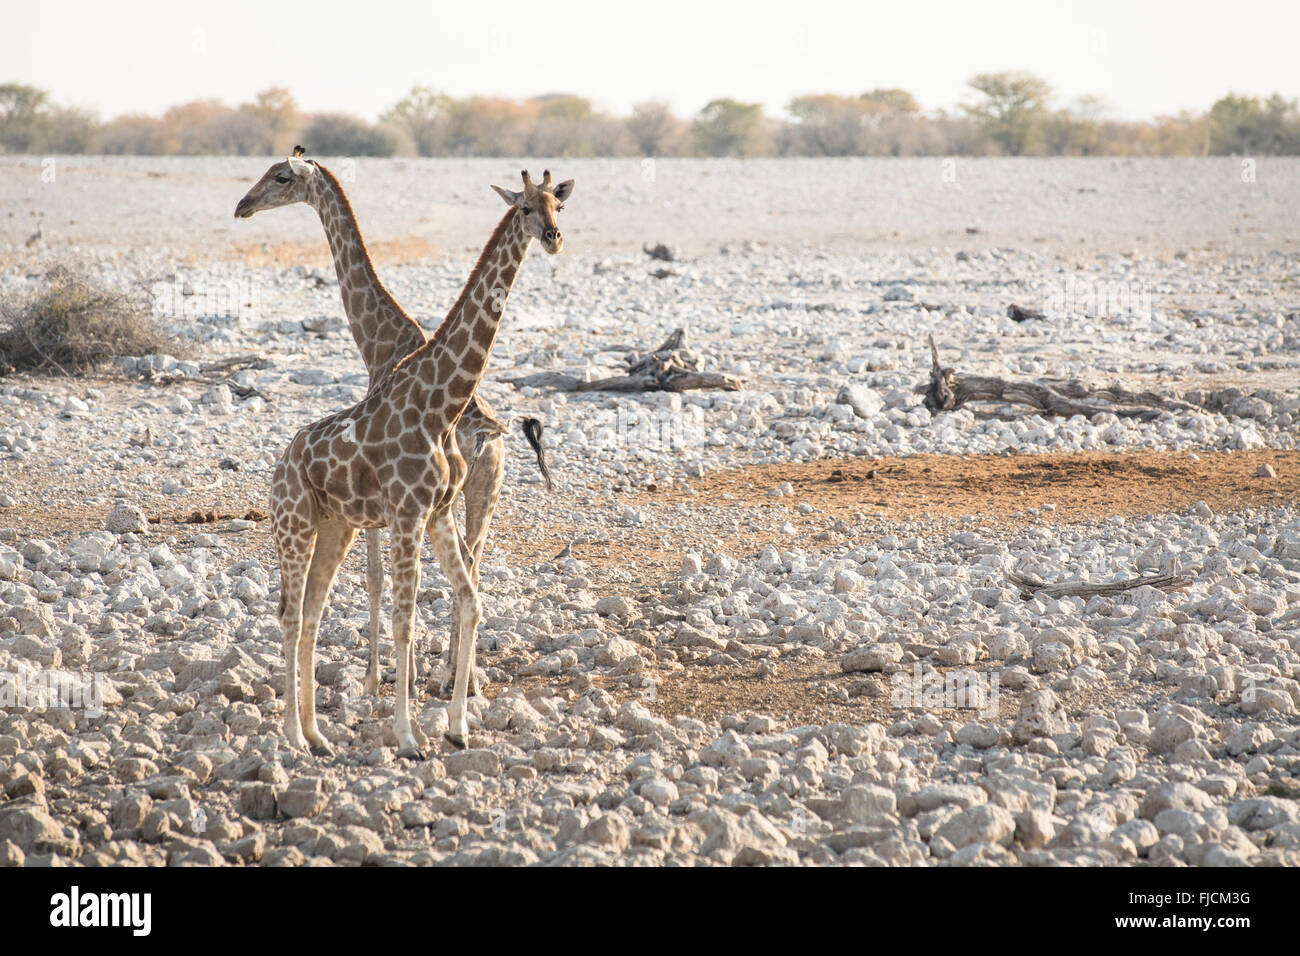 Giraffe at a water hole - Stock Image